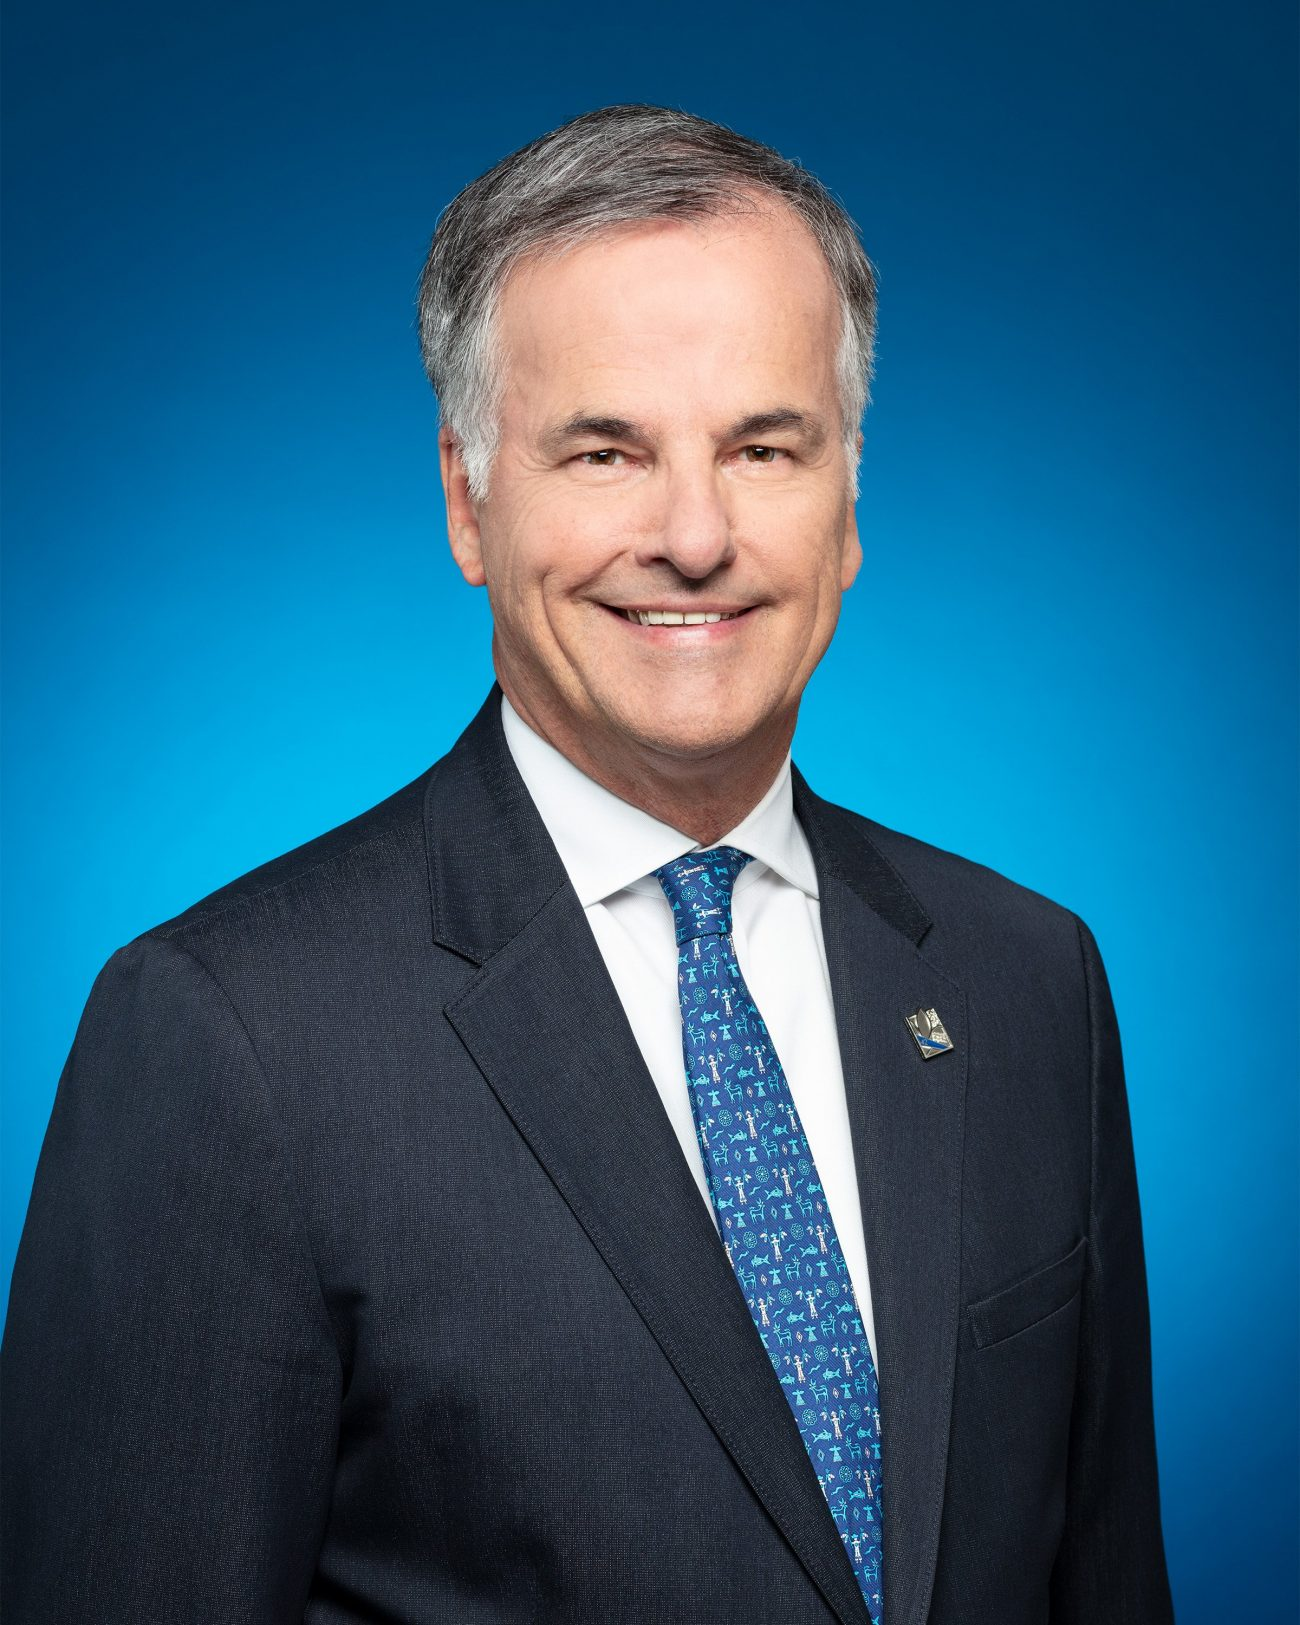 CAQ government shelves Bill 61, plans to rewrite and replace it, says MNA Ouellette